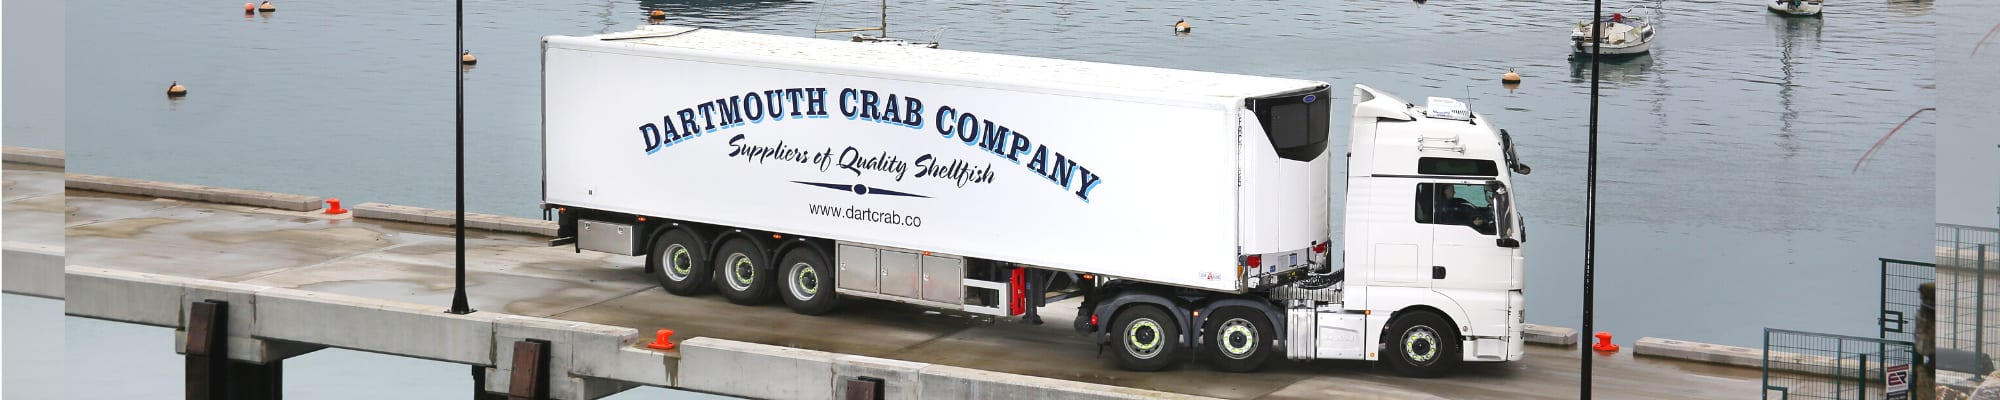 Hero_Dartmouth_Crab_Company